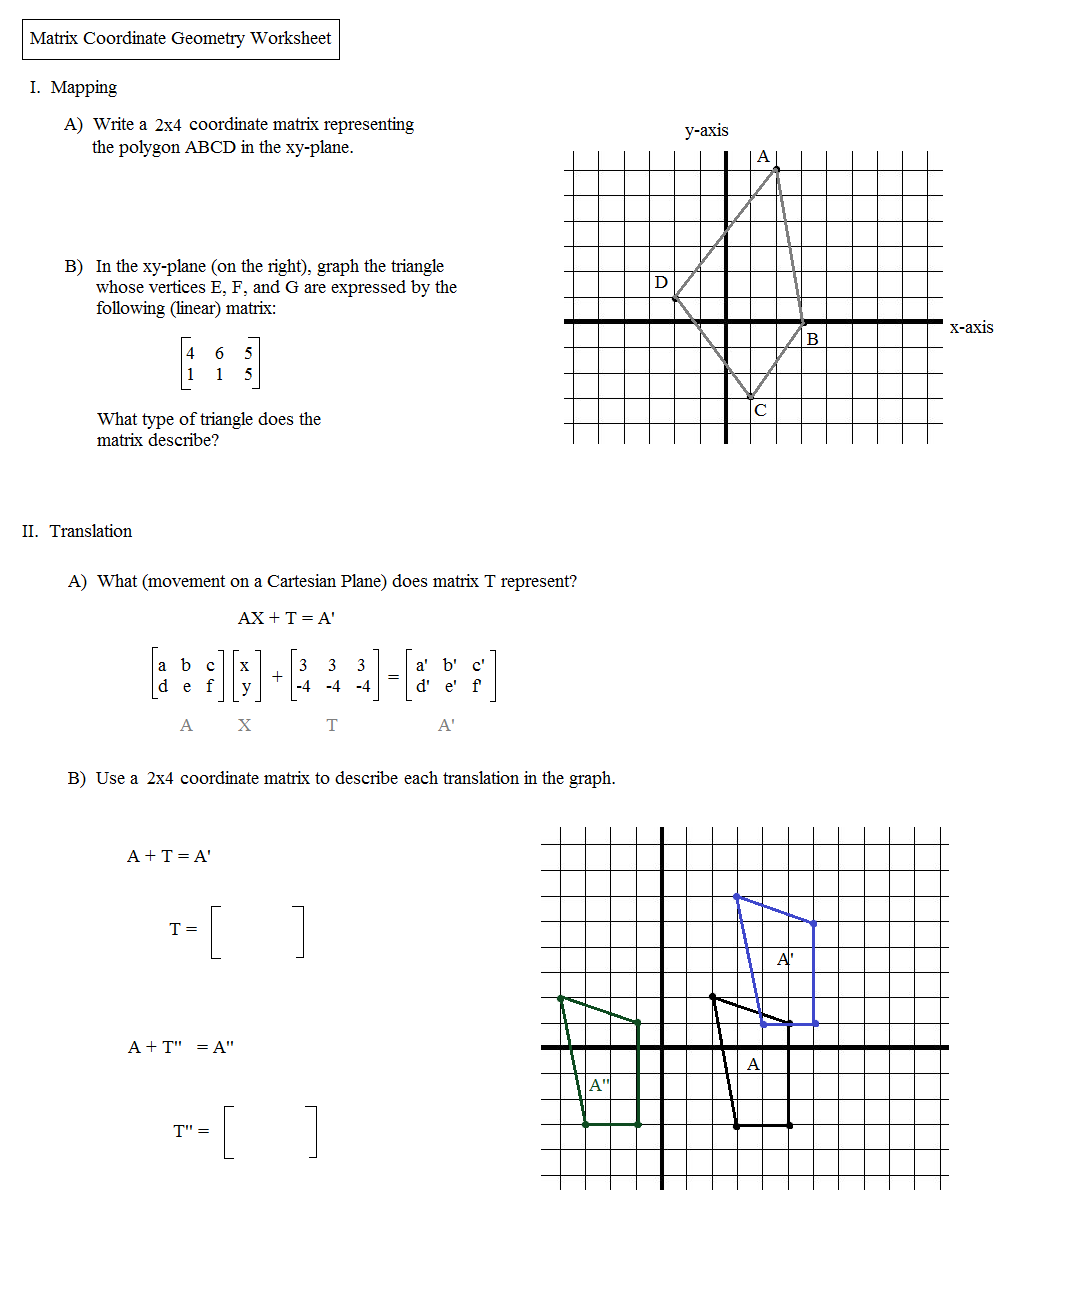 Worksheet Dilations Worksheet dilations worksheet multiple choice delwfg com math plane matrix iii coordinate geometry